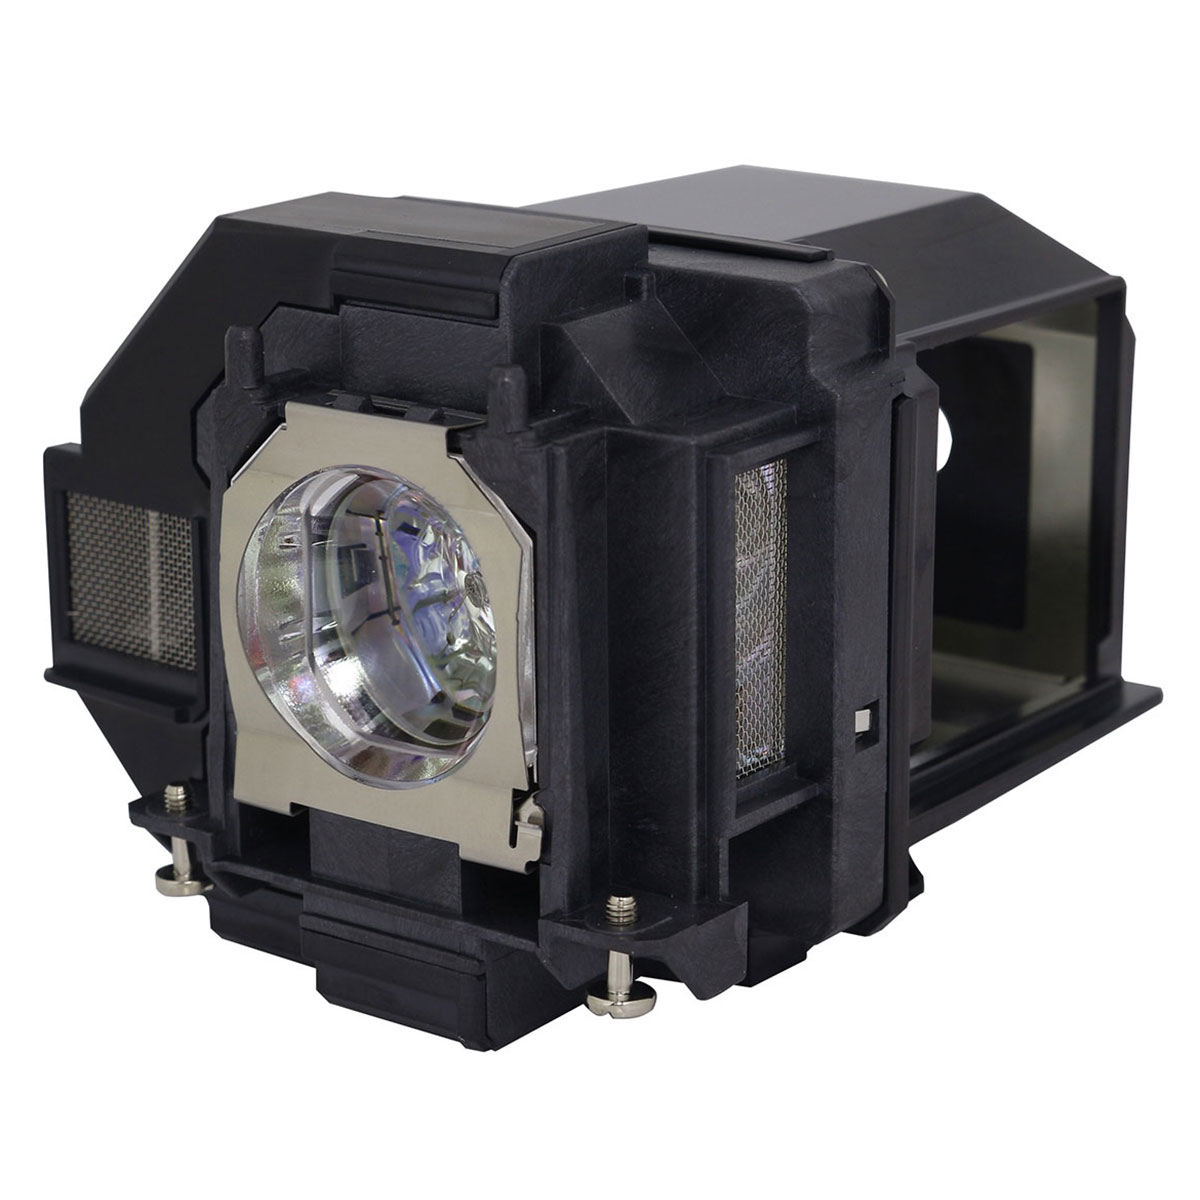 Lutema Platinum for Epson EB-S41 Projector Lamp with Housing (Original Philips Bulb Inside) - image 5 of 5